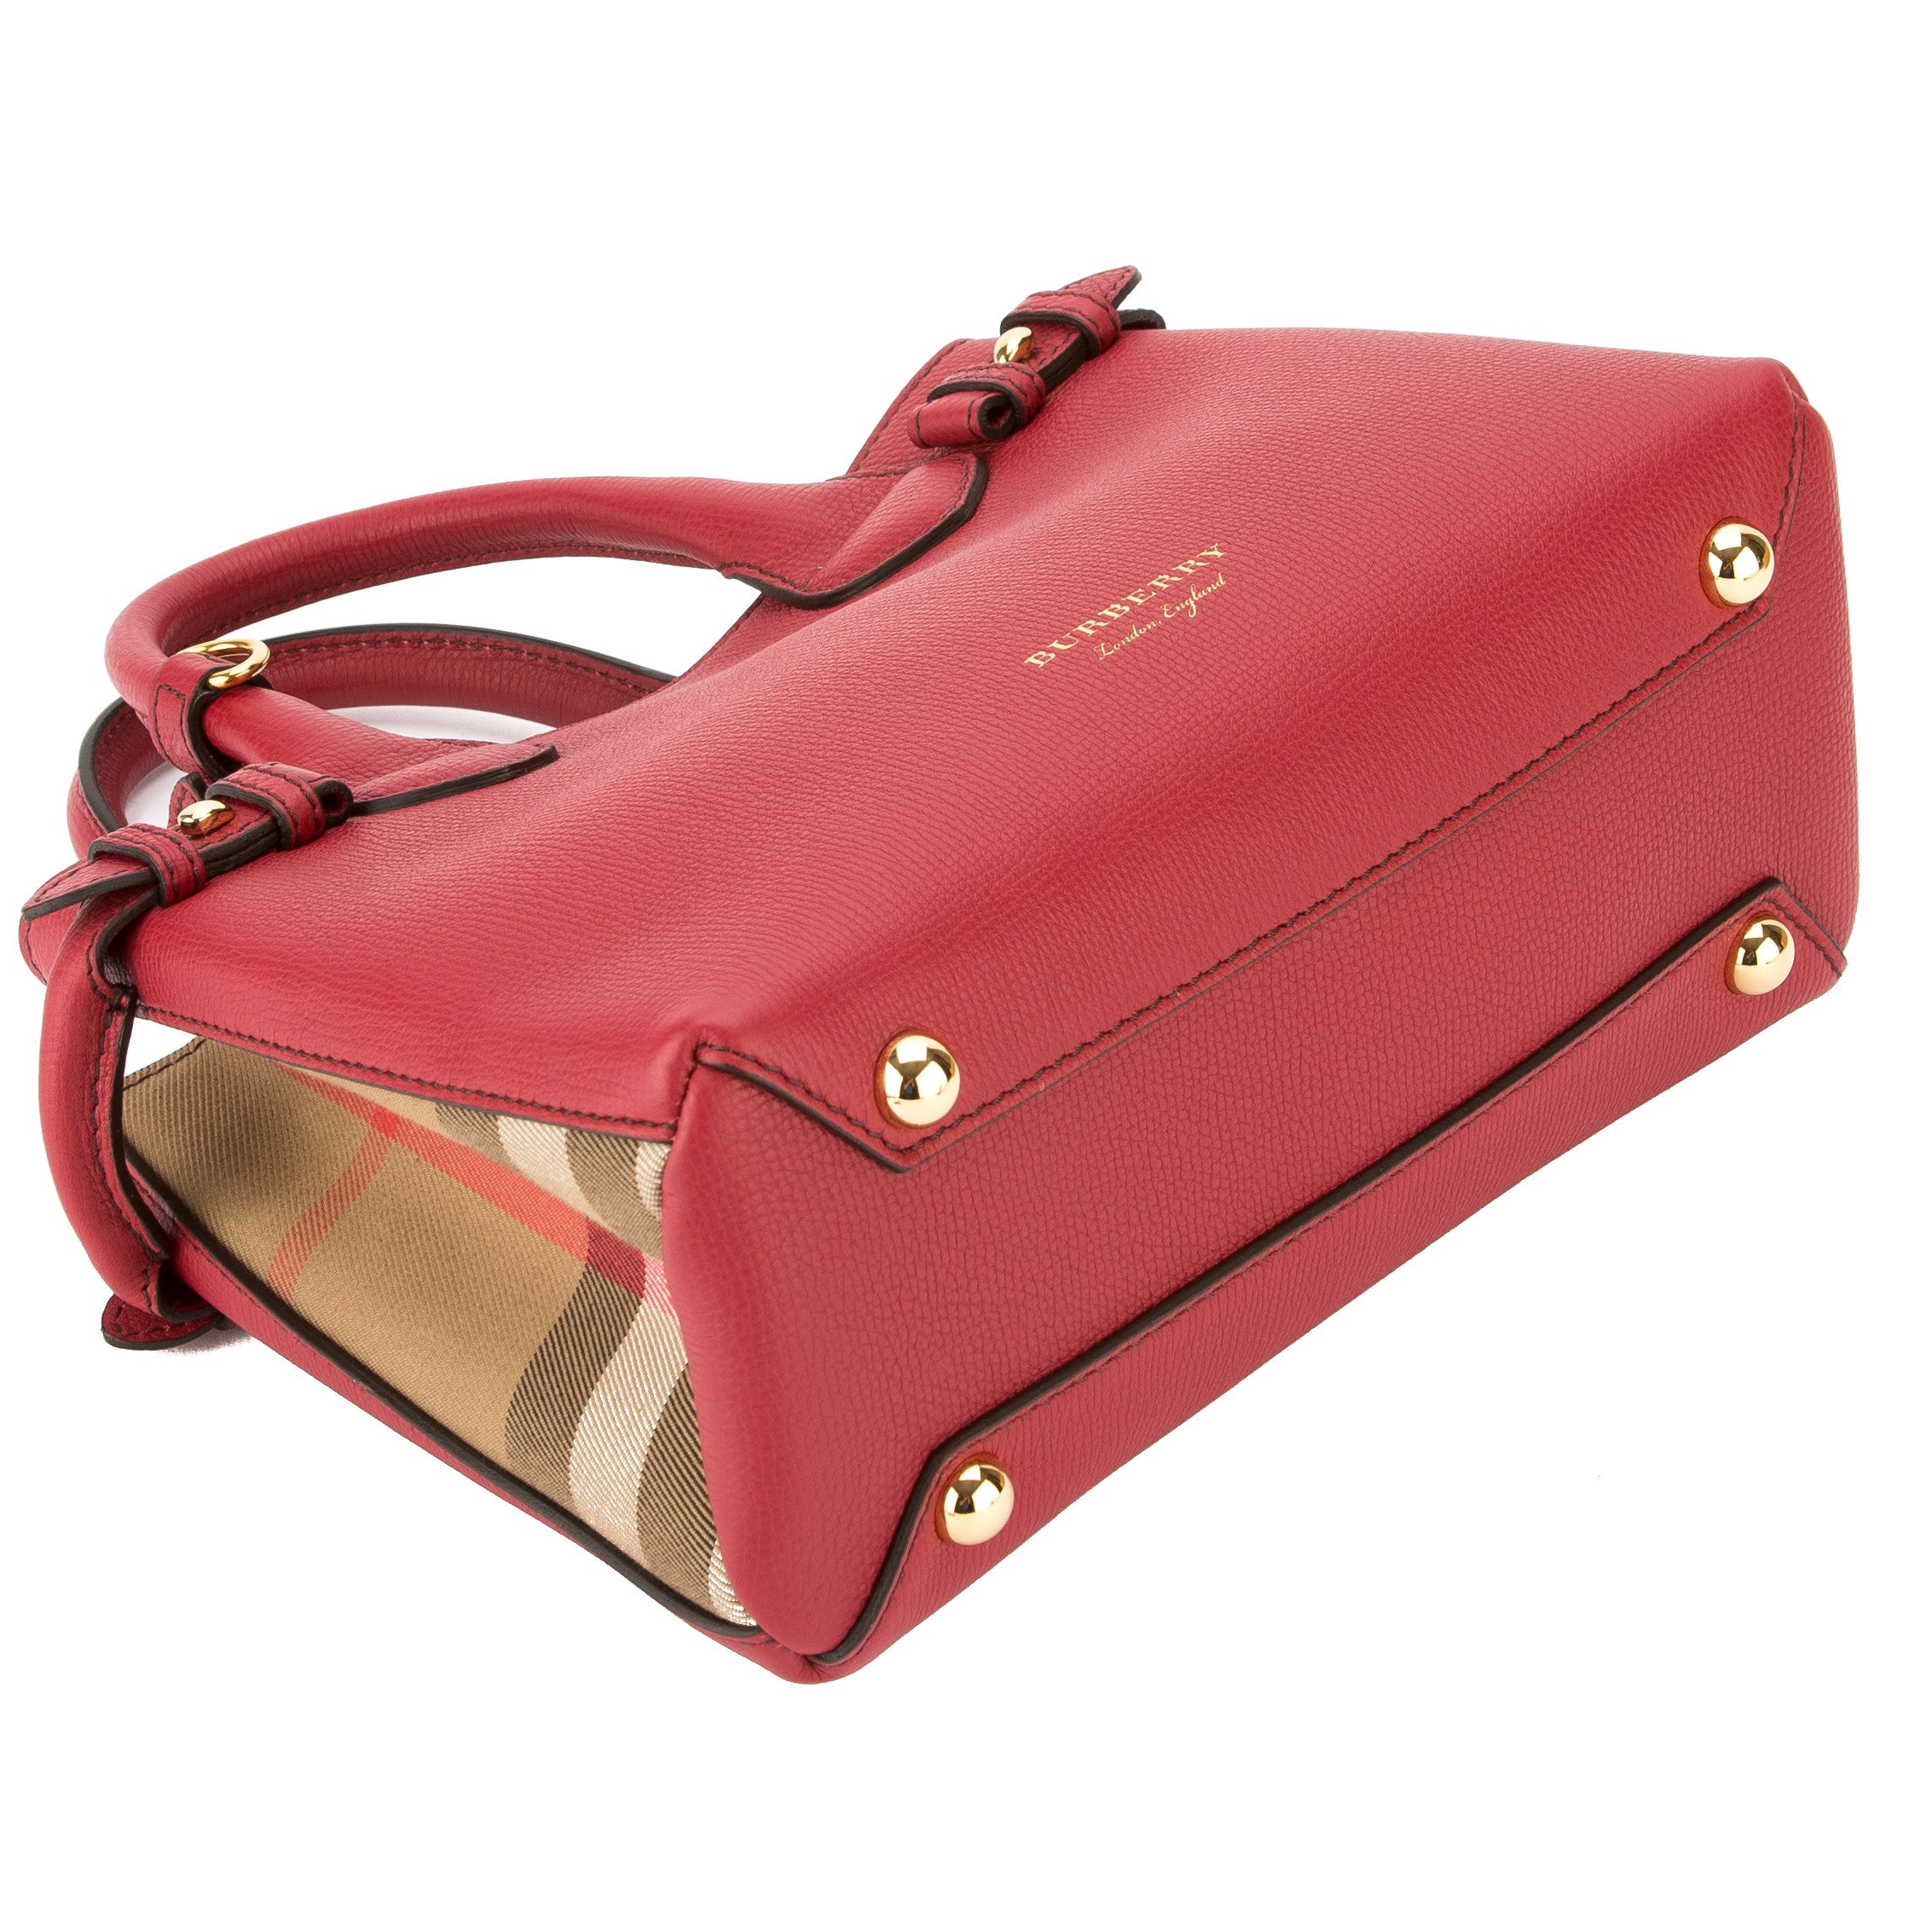 Burberry Red Leather and House Check Small Banner Bag (New with Tags) -  3539008  1898e502e26e2